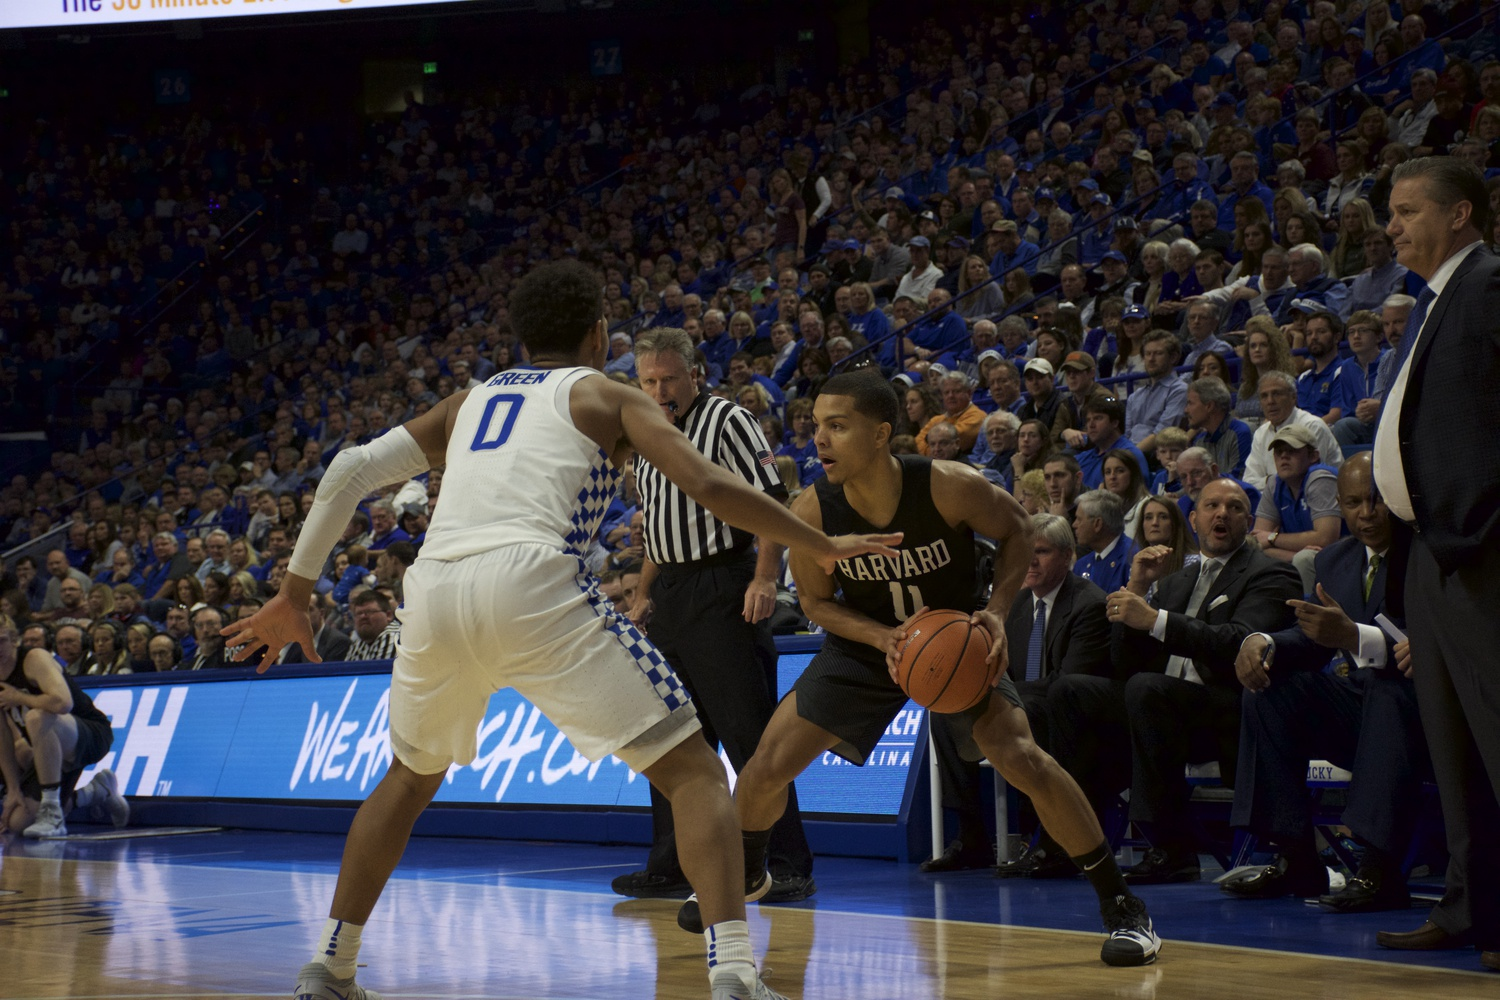 Sophomore guard Bryce Aiken looks to make a pass to a teammate during Harvard's loss against Kentucky last Saturday.